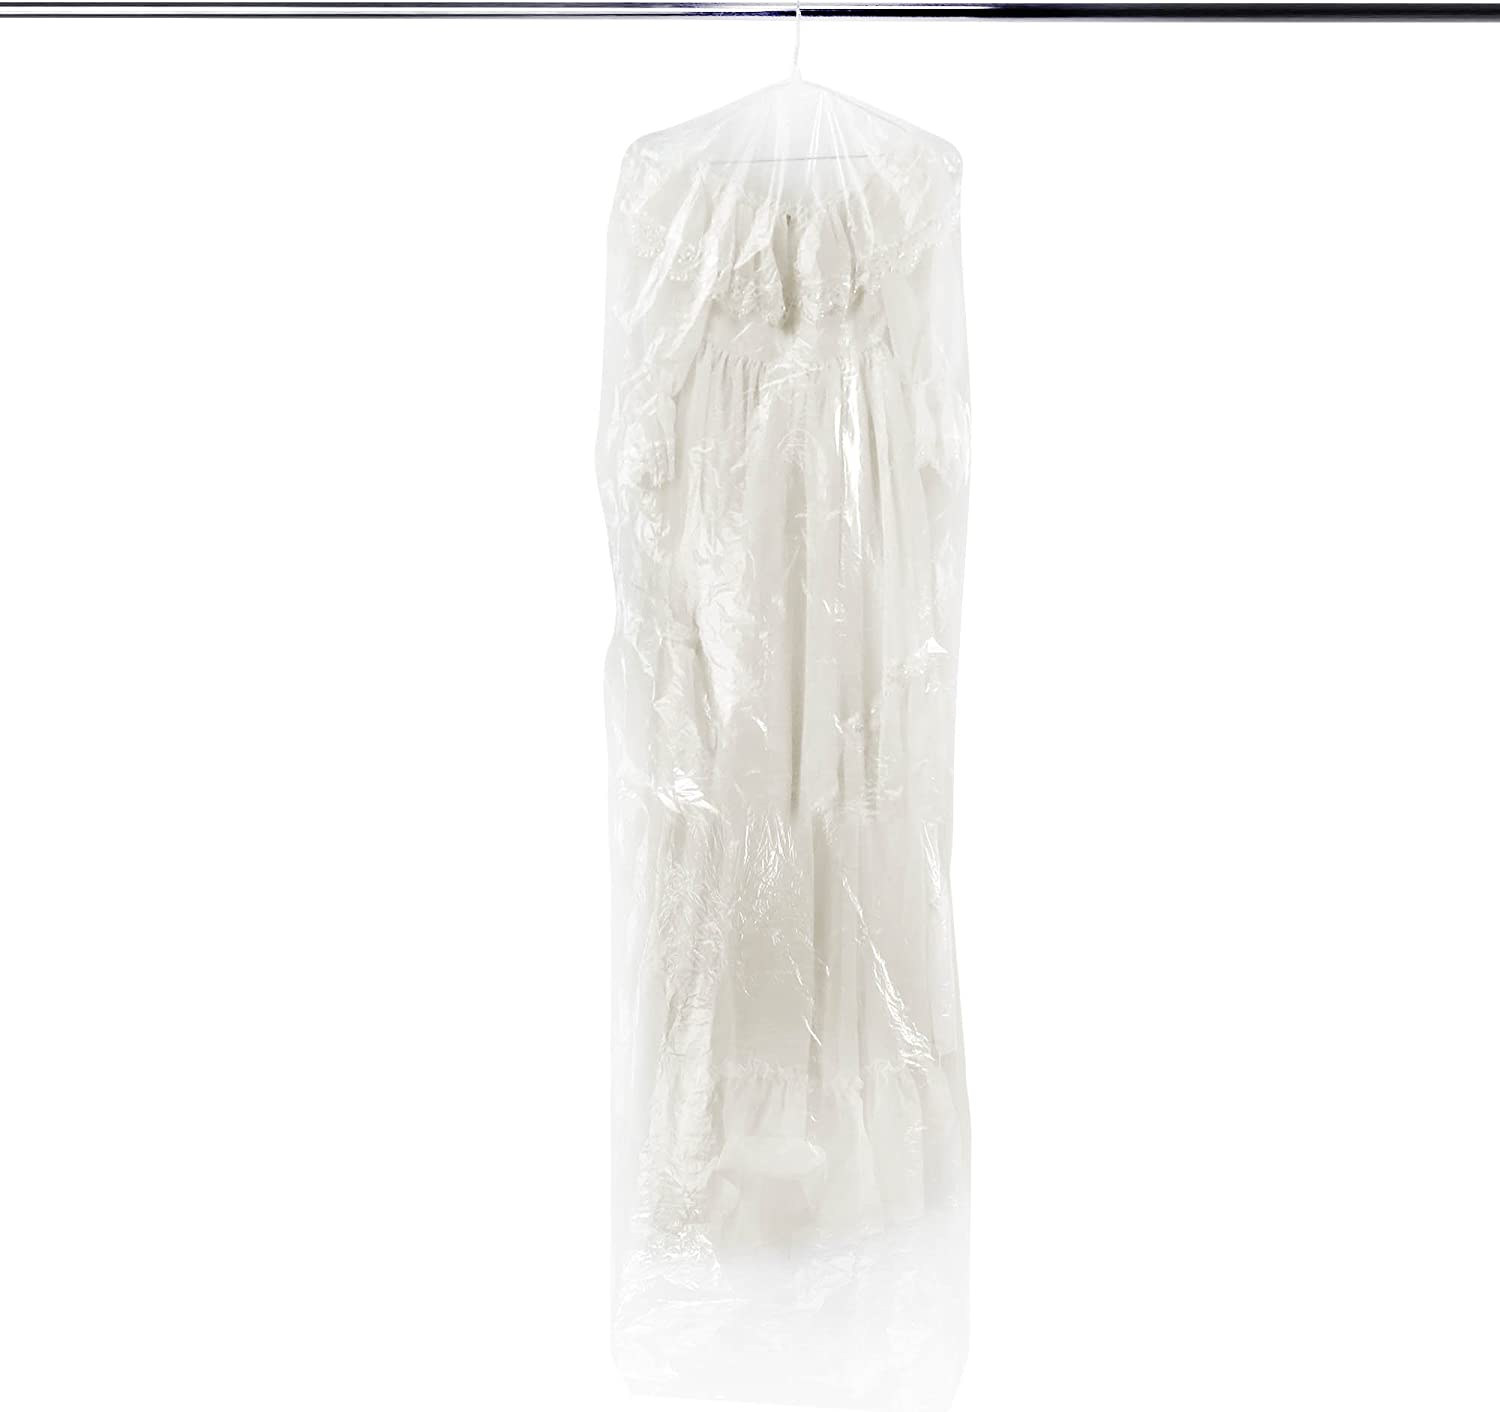 HANGERWORLD 6 Clear 84inch Dry Surprise price Cleaning Laundry Garm Polythylene Limited price sale